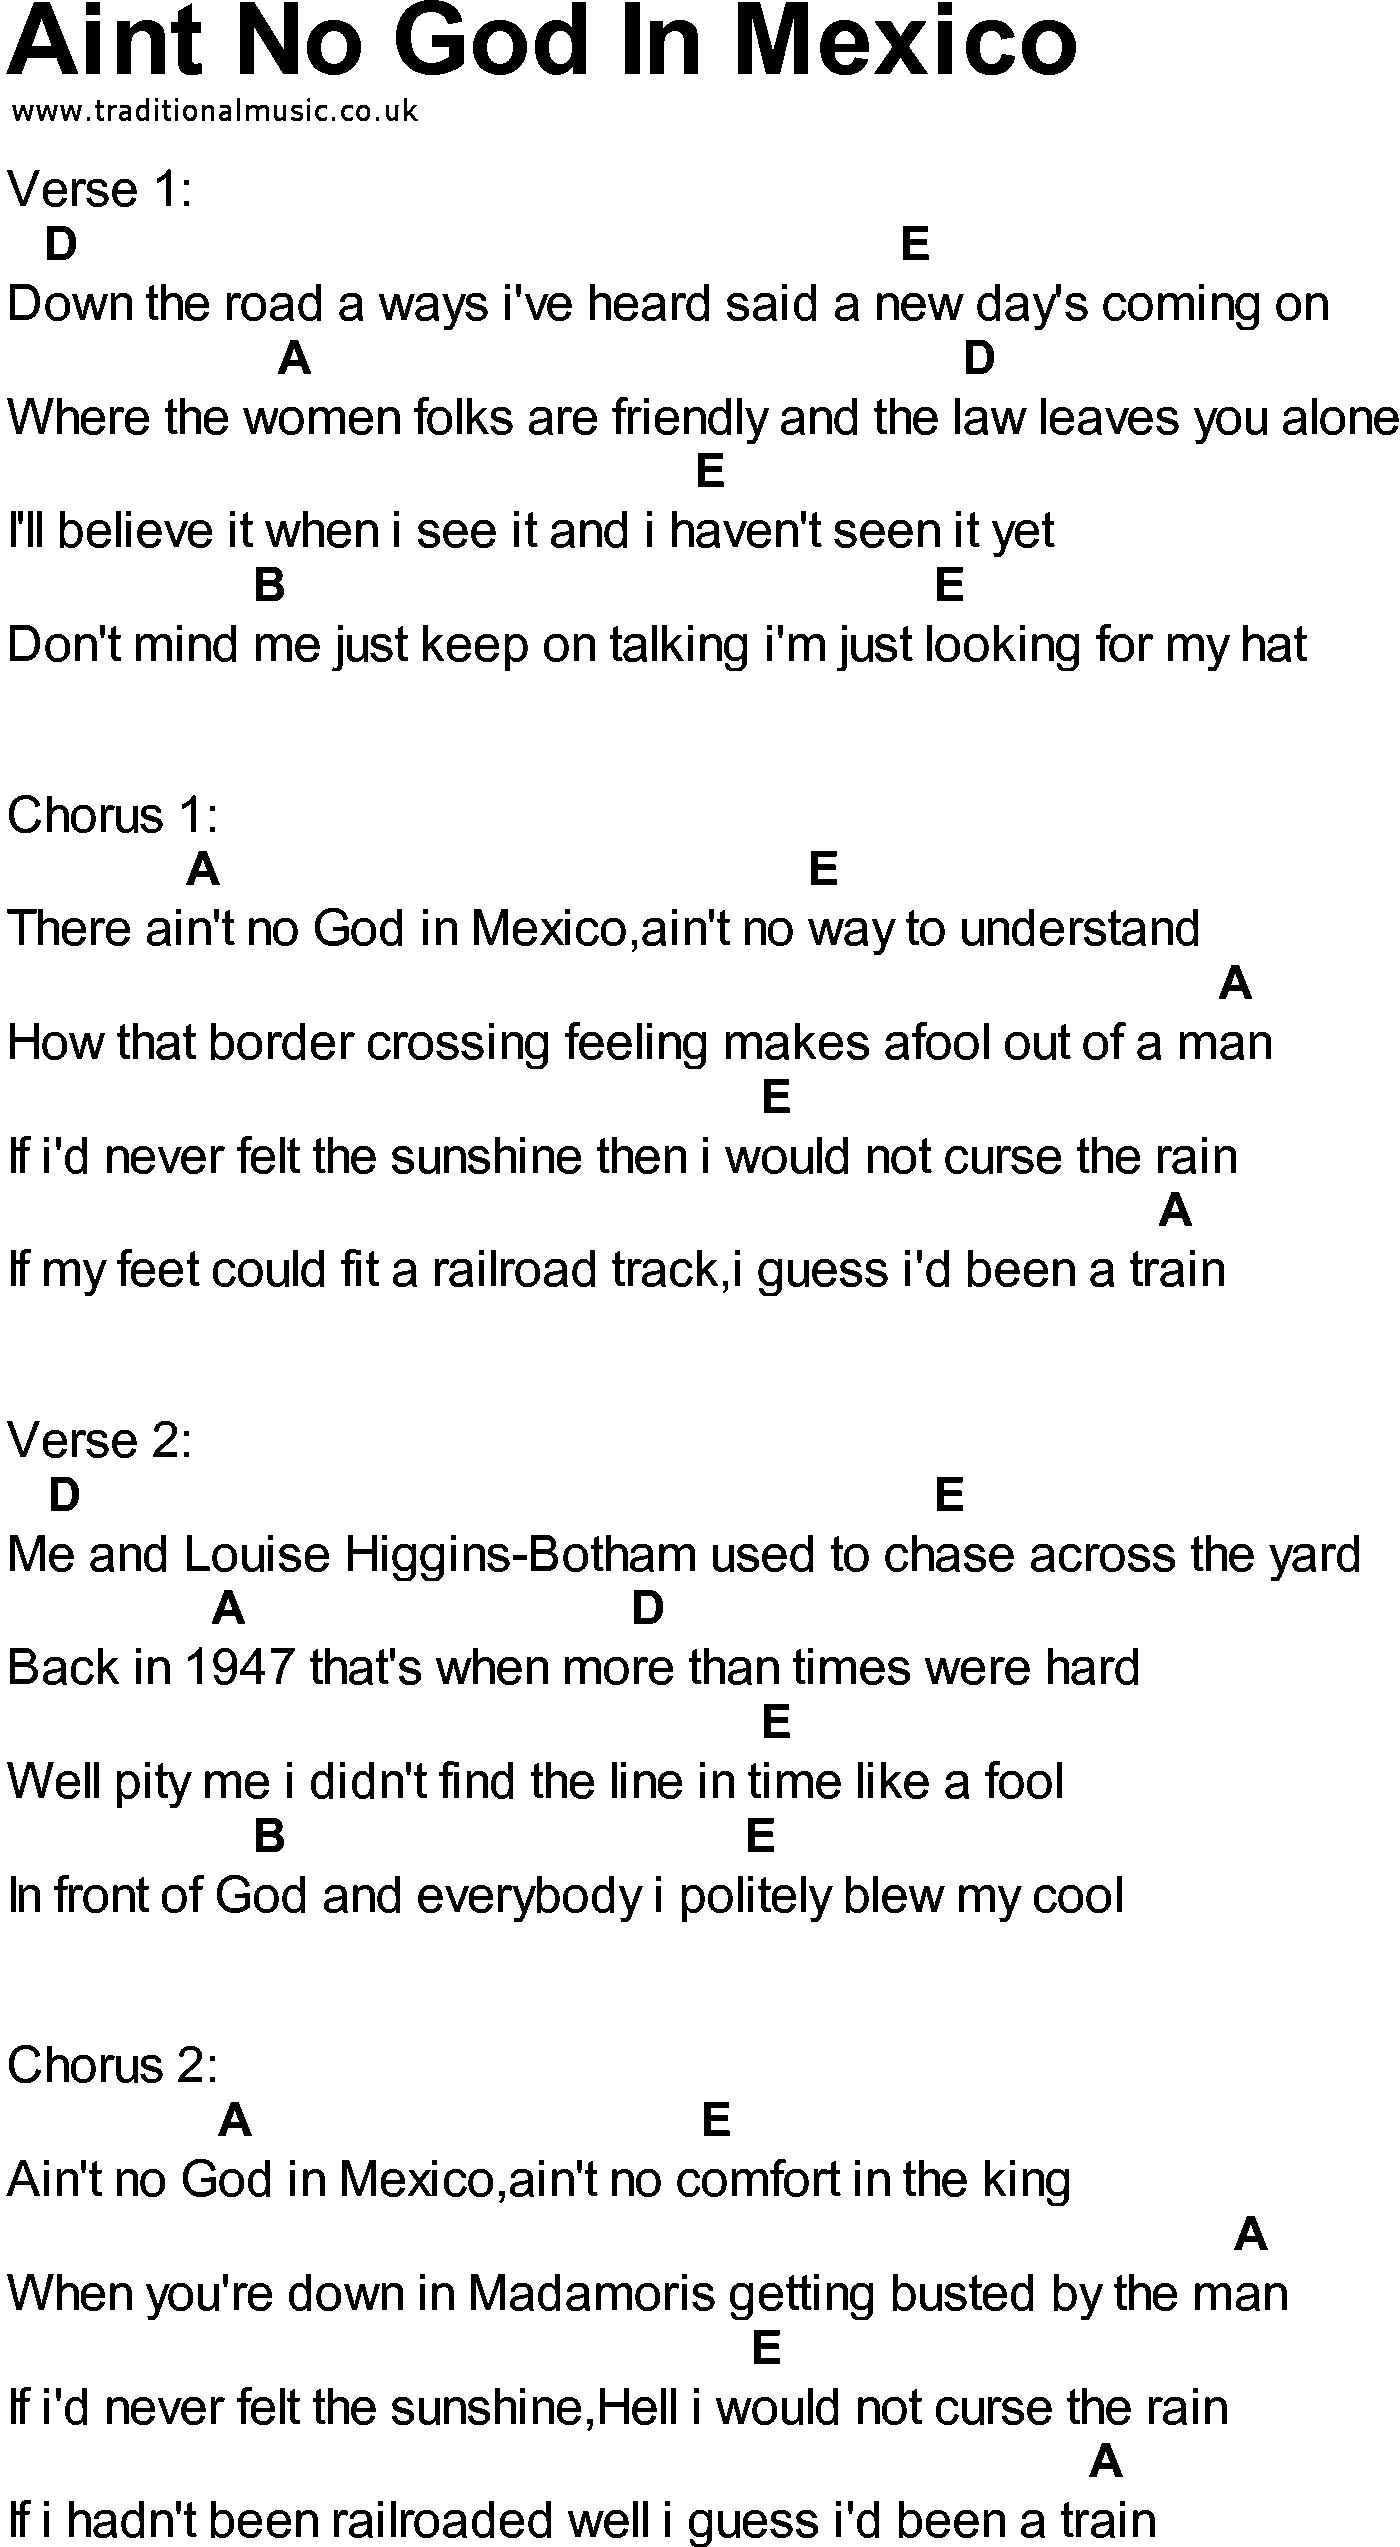 Bluegrass Songs With Chords Aint No God In Mexico